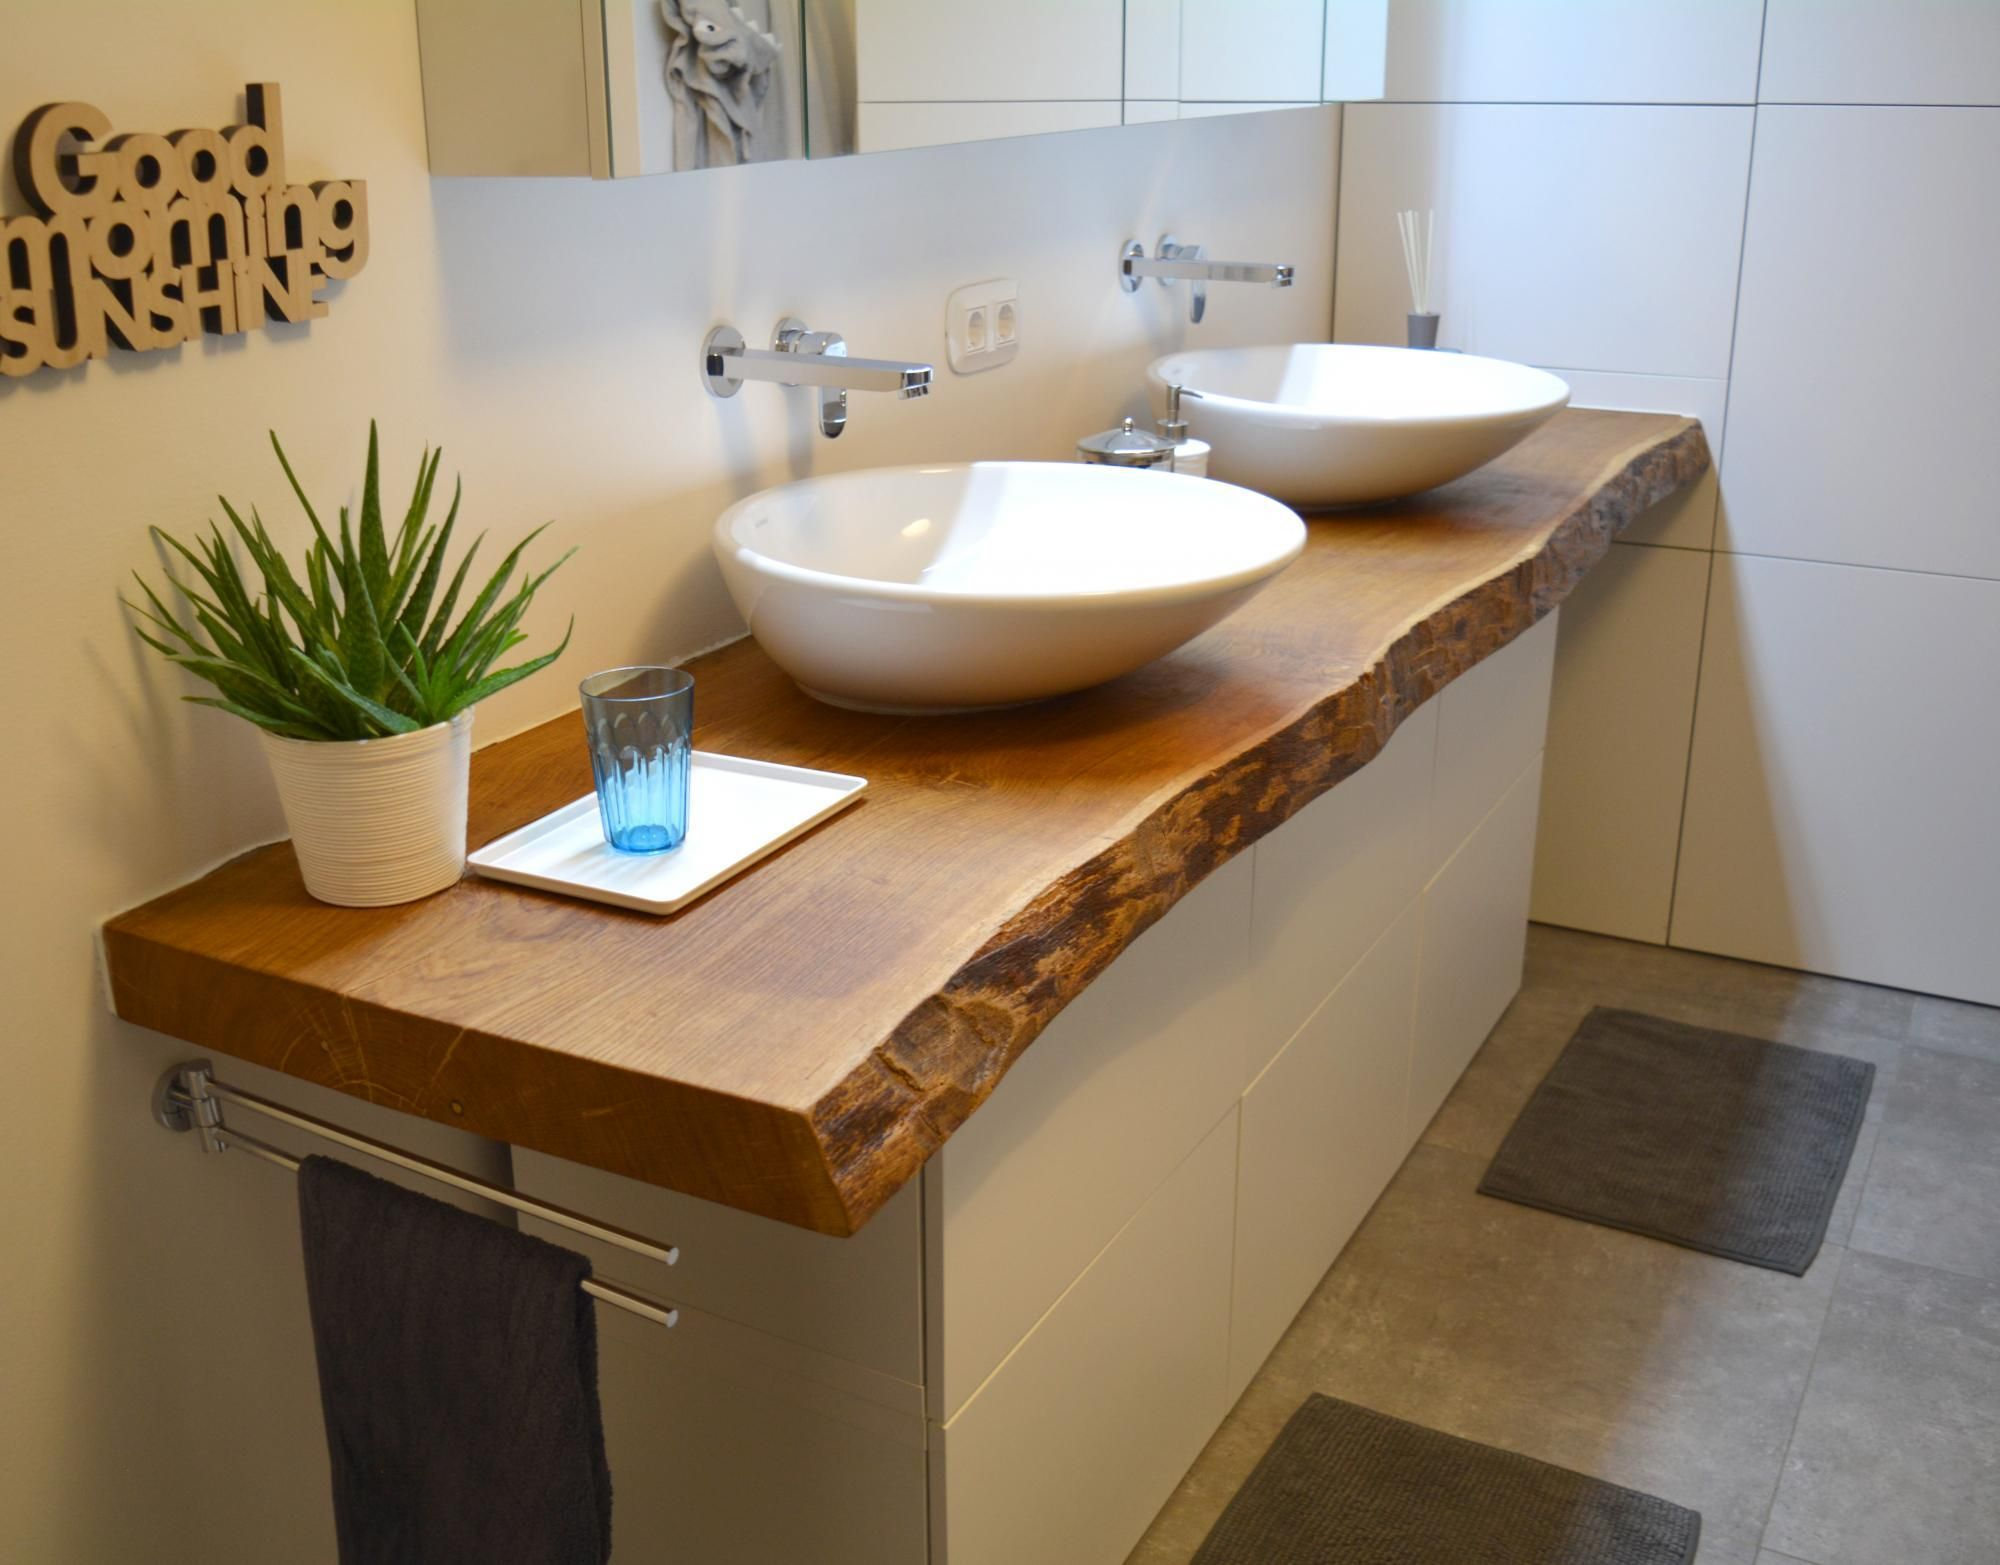 Solid wood vanity - the highlight in your bathroom - wood wonder - My Blog,  #bathroom #highlight #solid #vanity #wonder